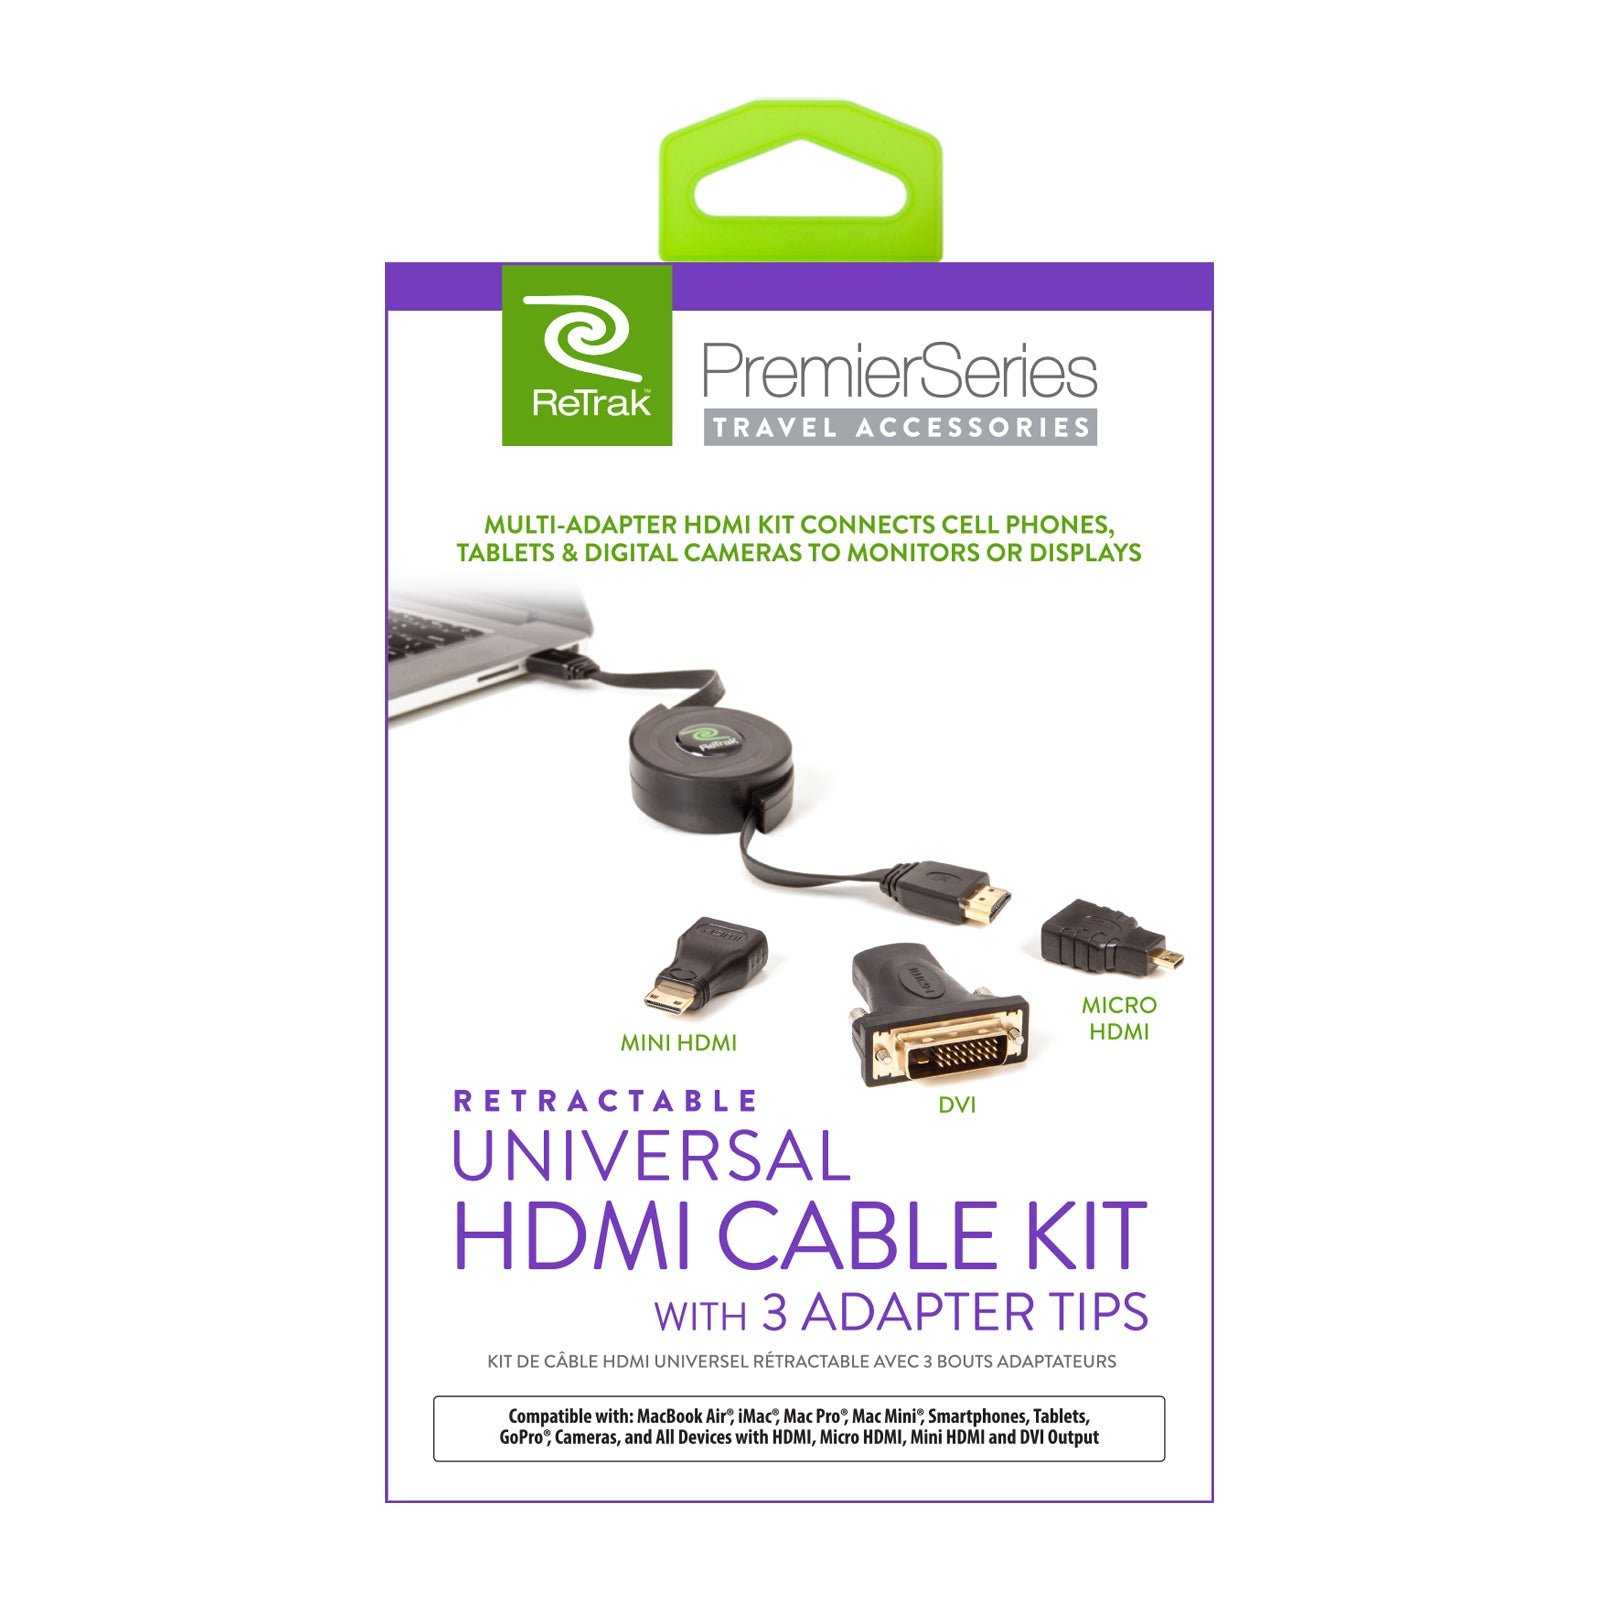 Cable HDMI Adapters | Mini HDMI, Micro HDMI, and DVI Adapters | Retractable Adapter HDMI Cable